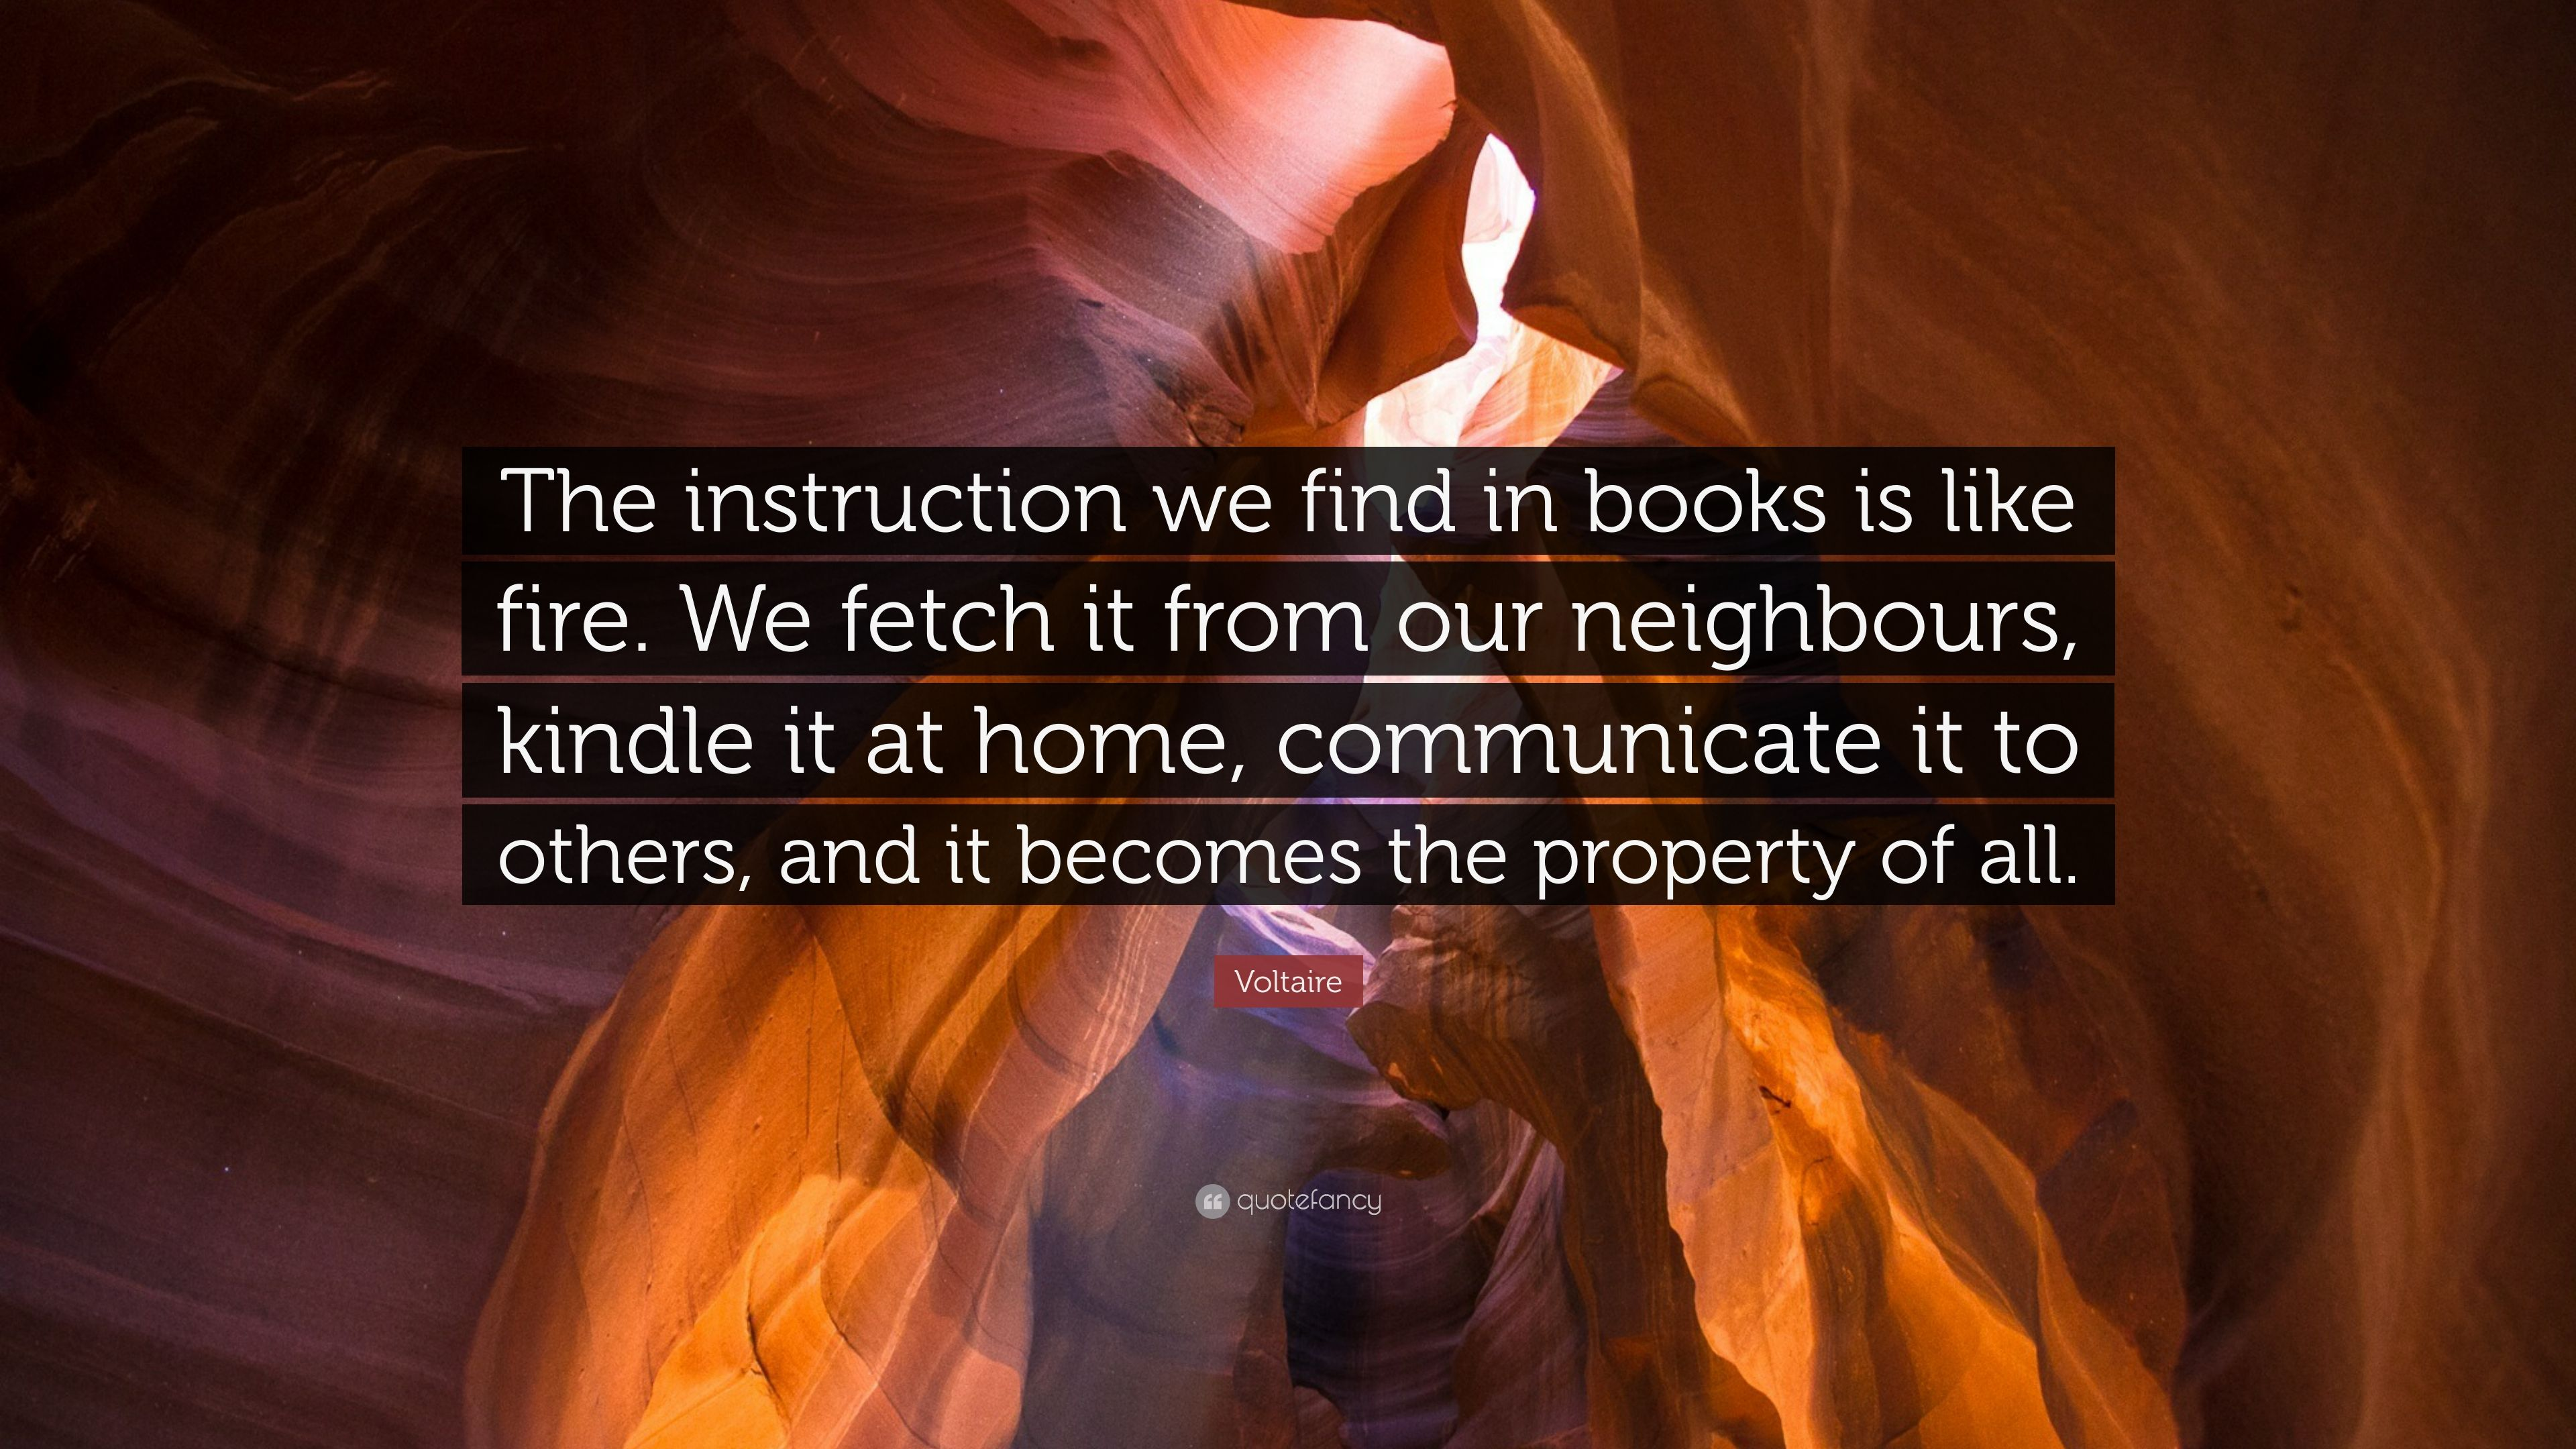 Voltaire Quote The Instruction We Find In Books Is Like Fire We Fetch It From Our Neighbours Kindle It At Home Communicate It To Oth 7 Wallpapers Quotefancy